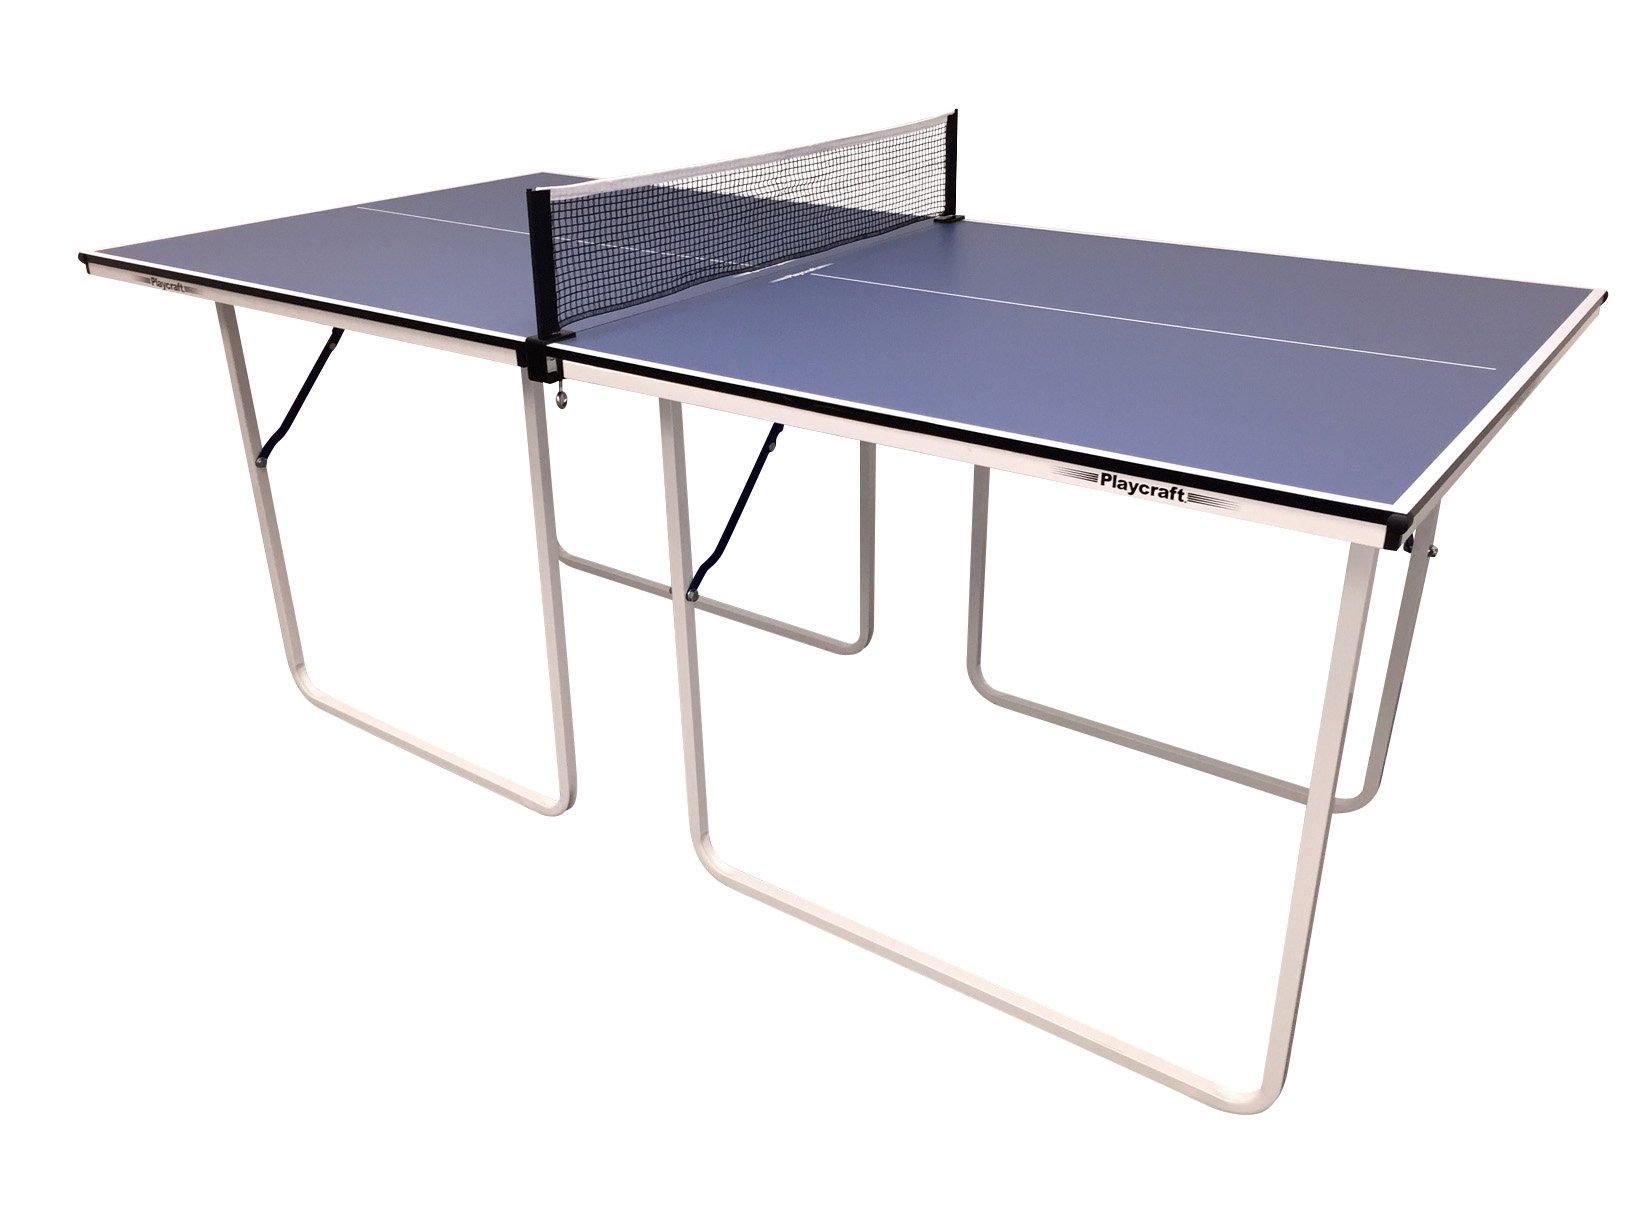 Playcraft Topspin Midsize 6' Table Tennis Table by Playcraft